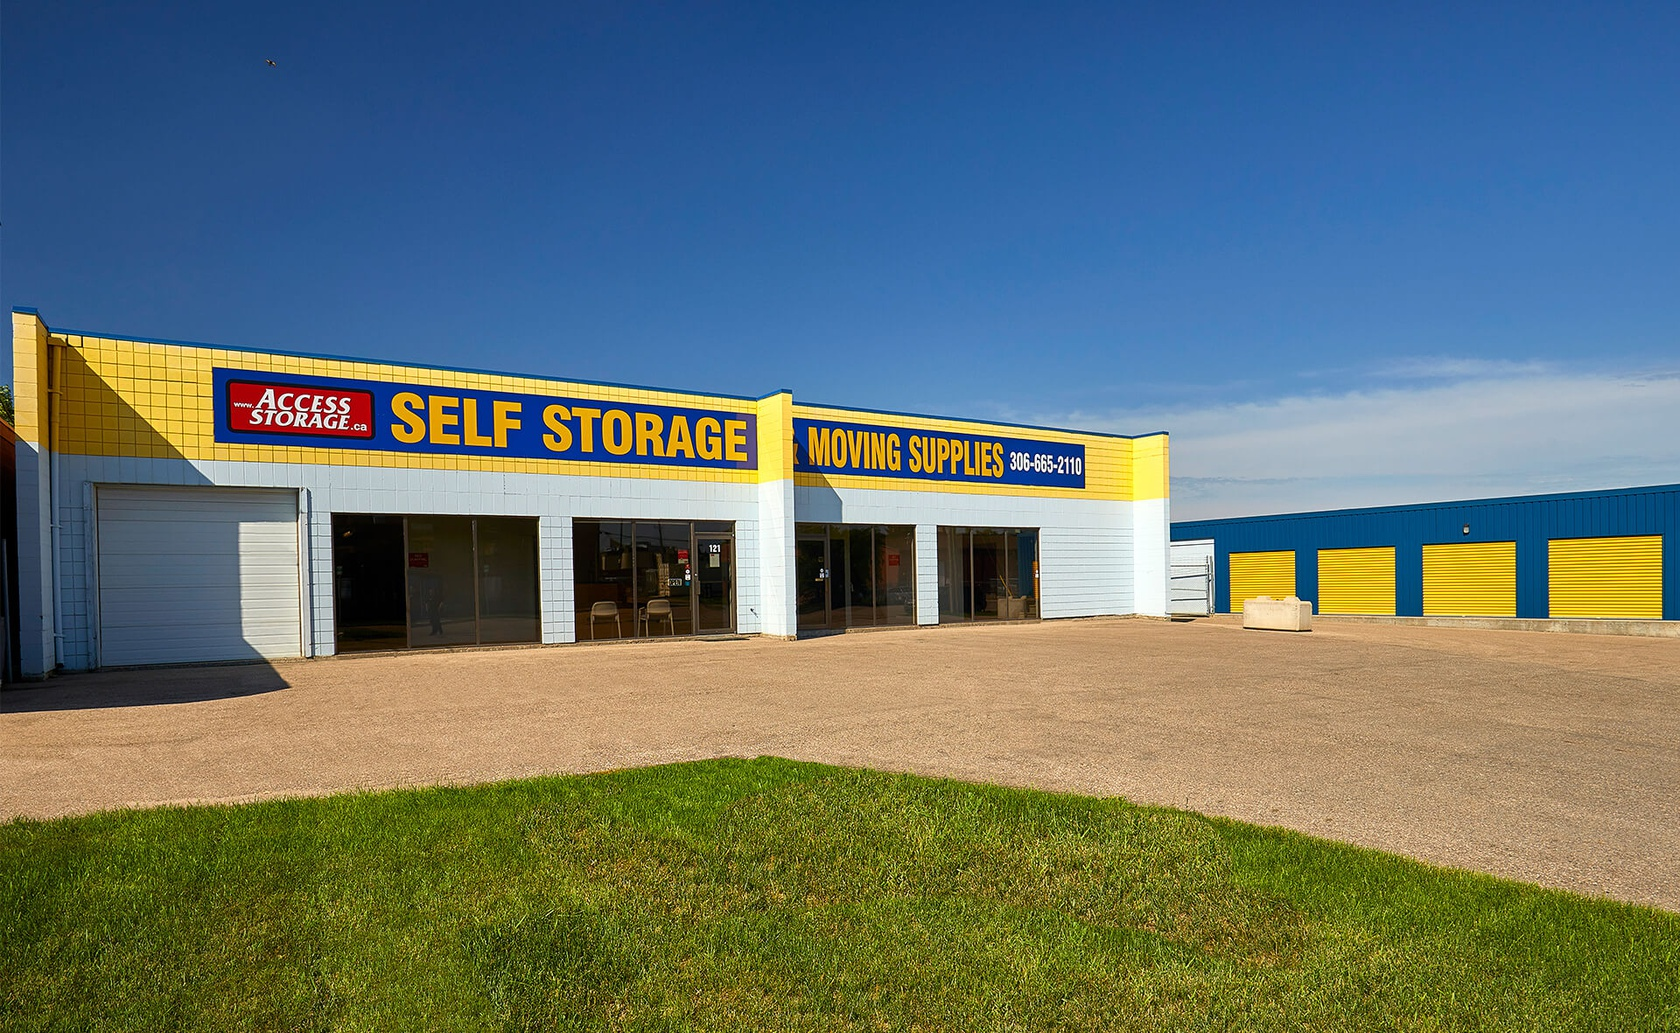 Rent Saskatoon storage units at 121 Gyles Place. We offer a wide-range of affordable self storage units and your first 4 weeks are free!